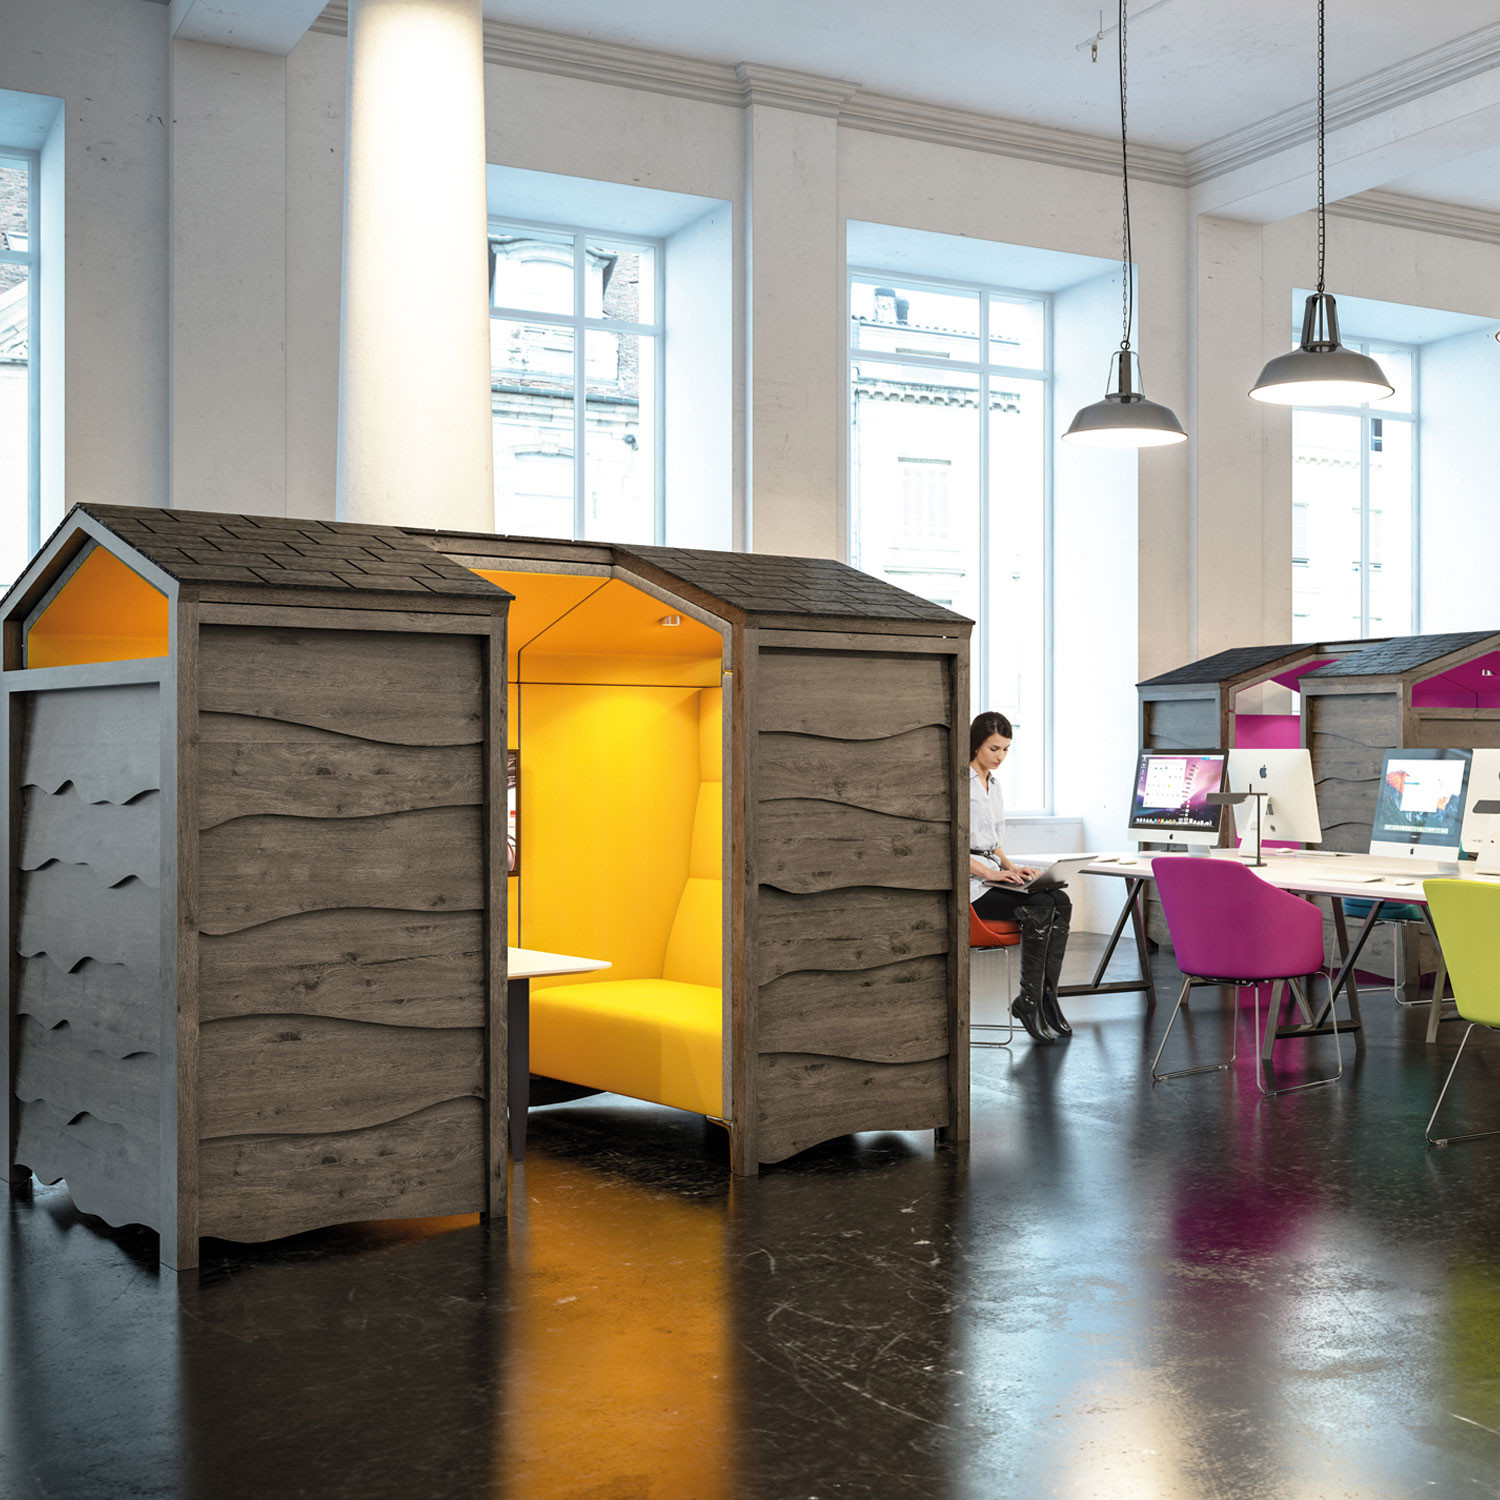 Huddle Shed for Social Spaces